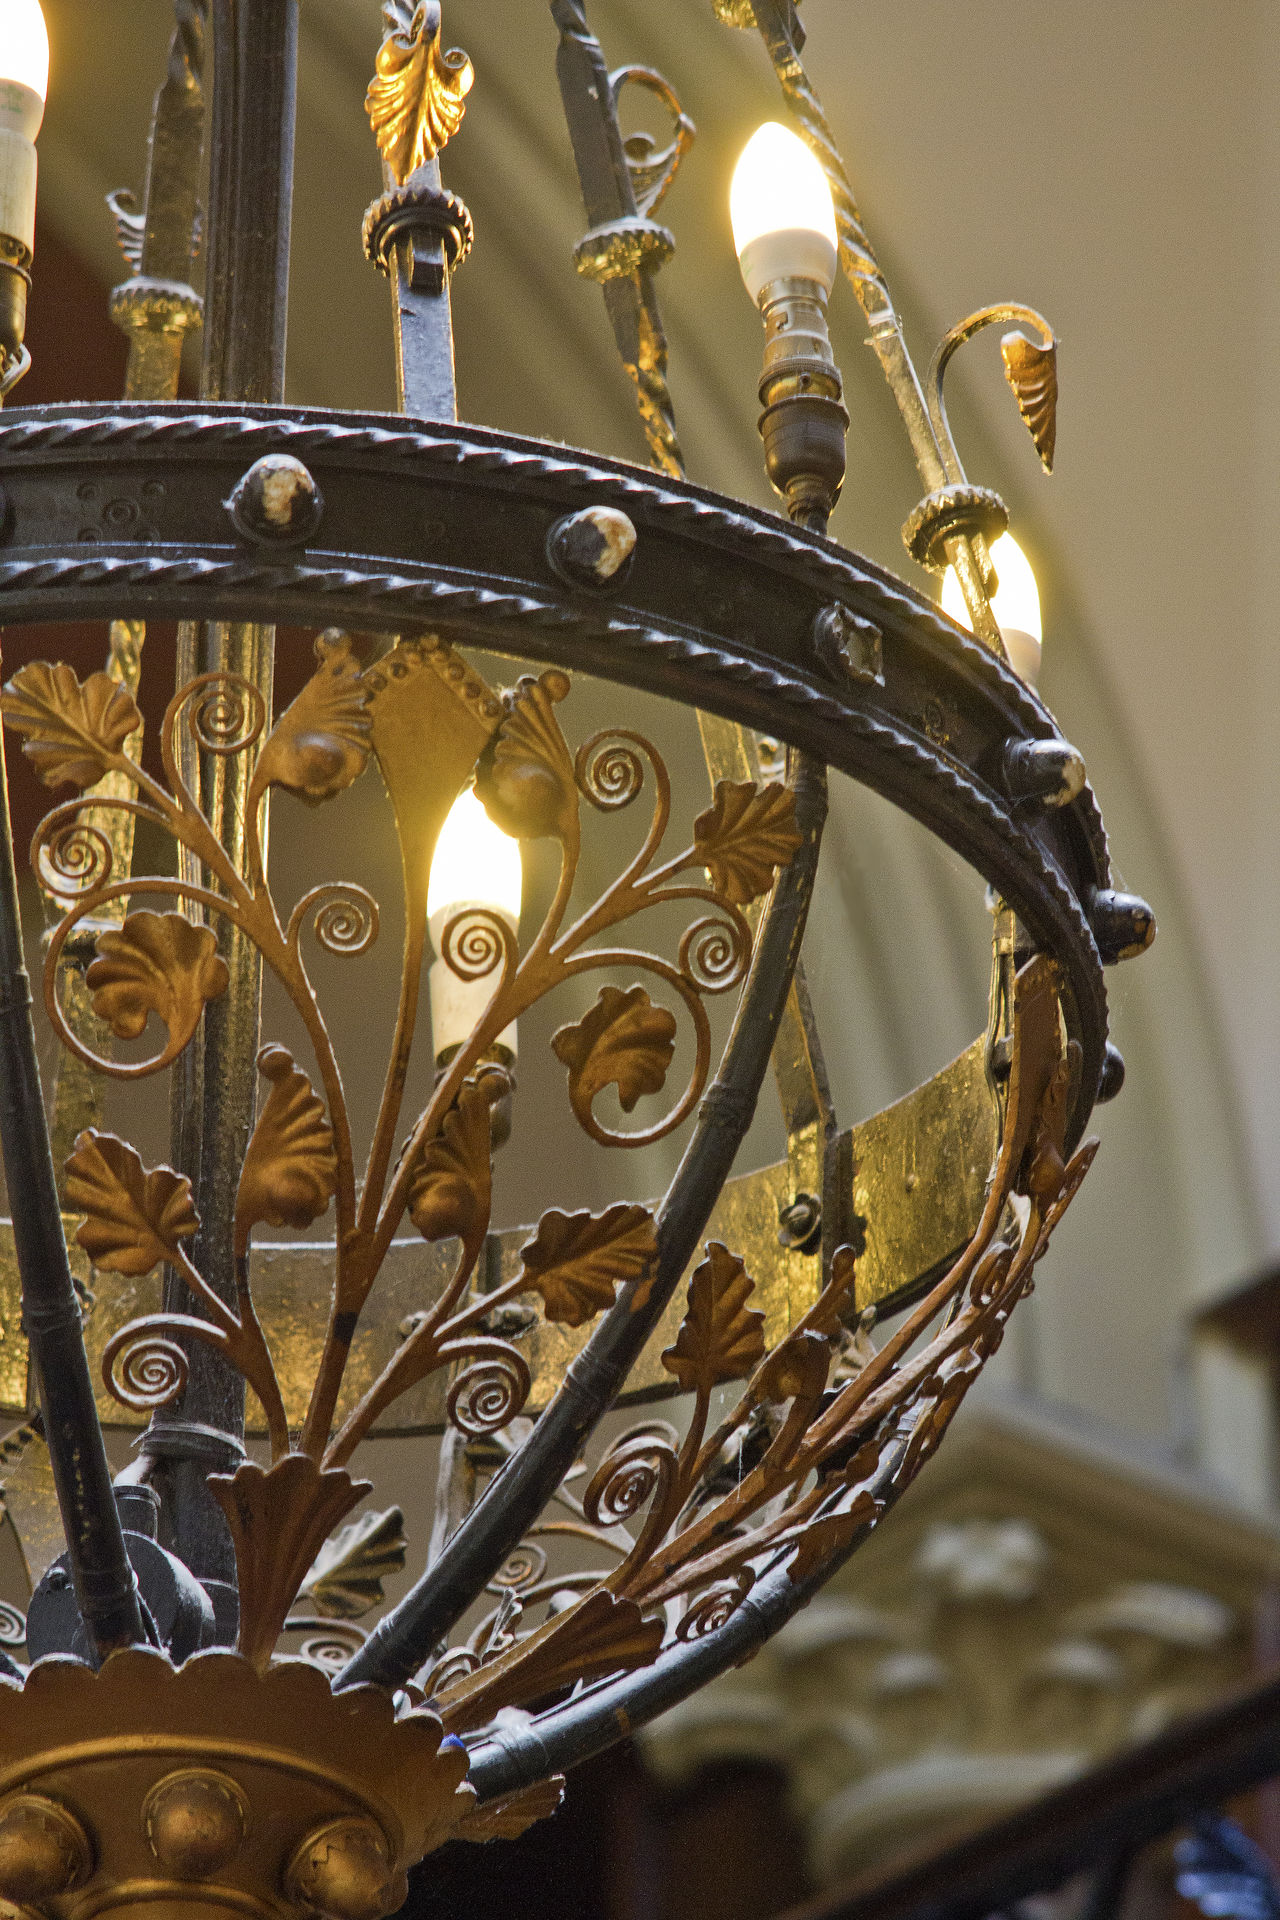 Art And Craft Chandalier Close-up Day Design Gilt Gold Colored Illuminated Indoors  Low Angle View No People Ornate